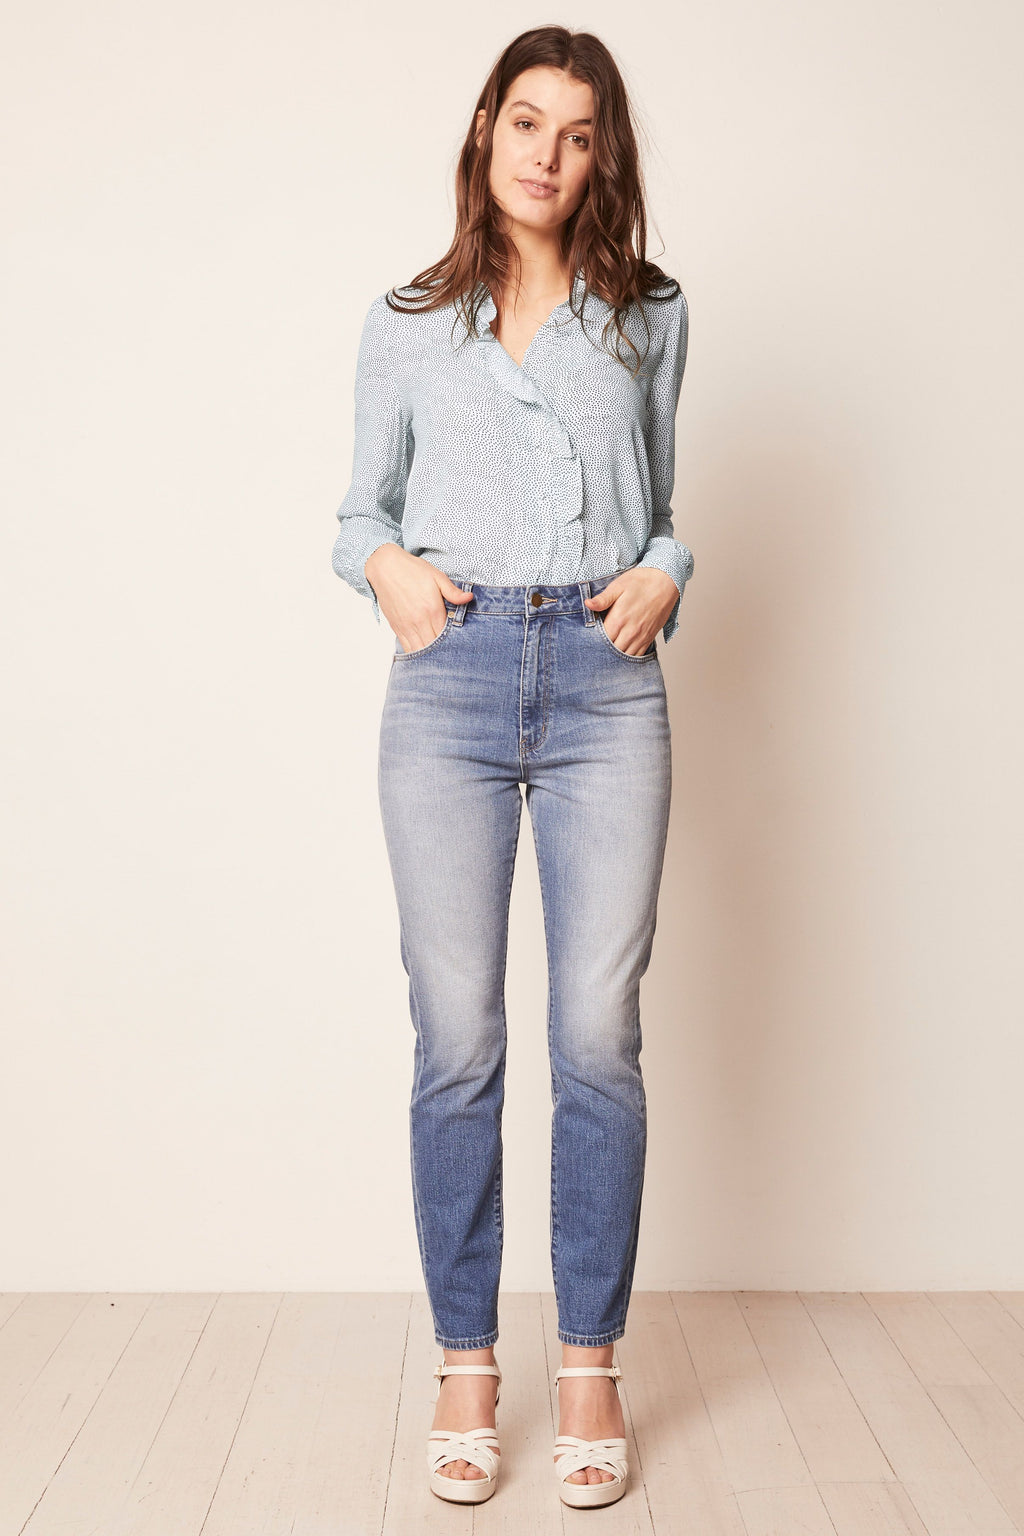 Rolla's - Lily Blouse - Mini Spot French Blue - Gals